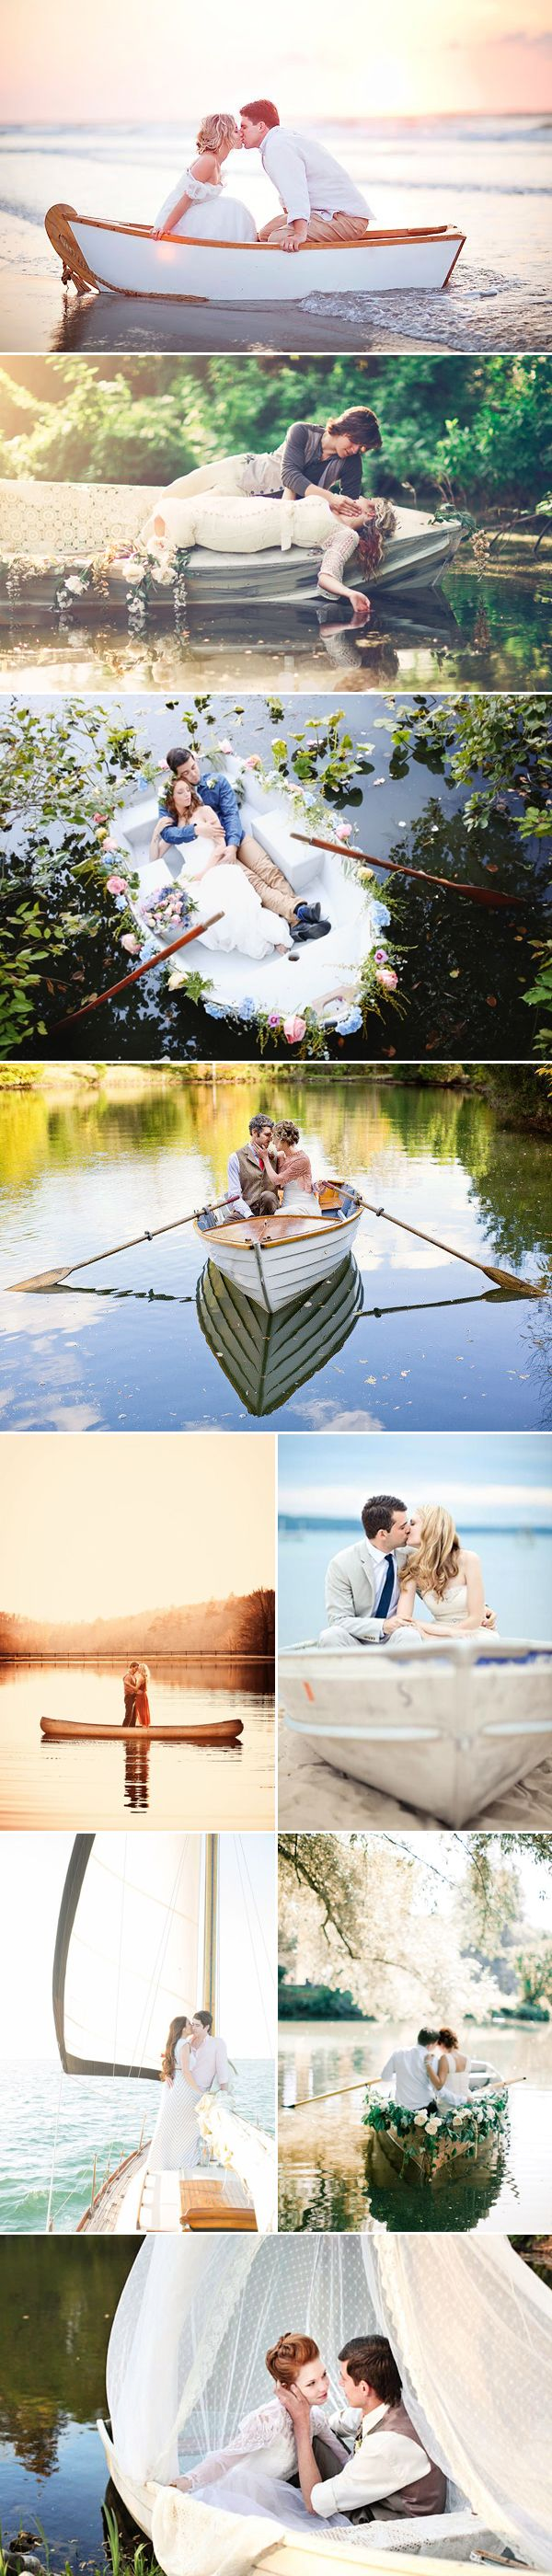 Romantic Love-Boat Engagement Photo Ideas